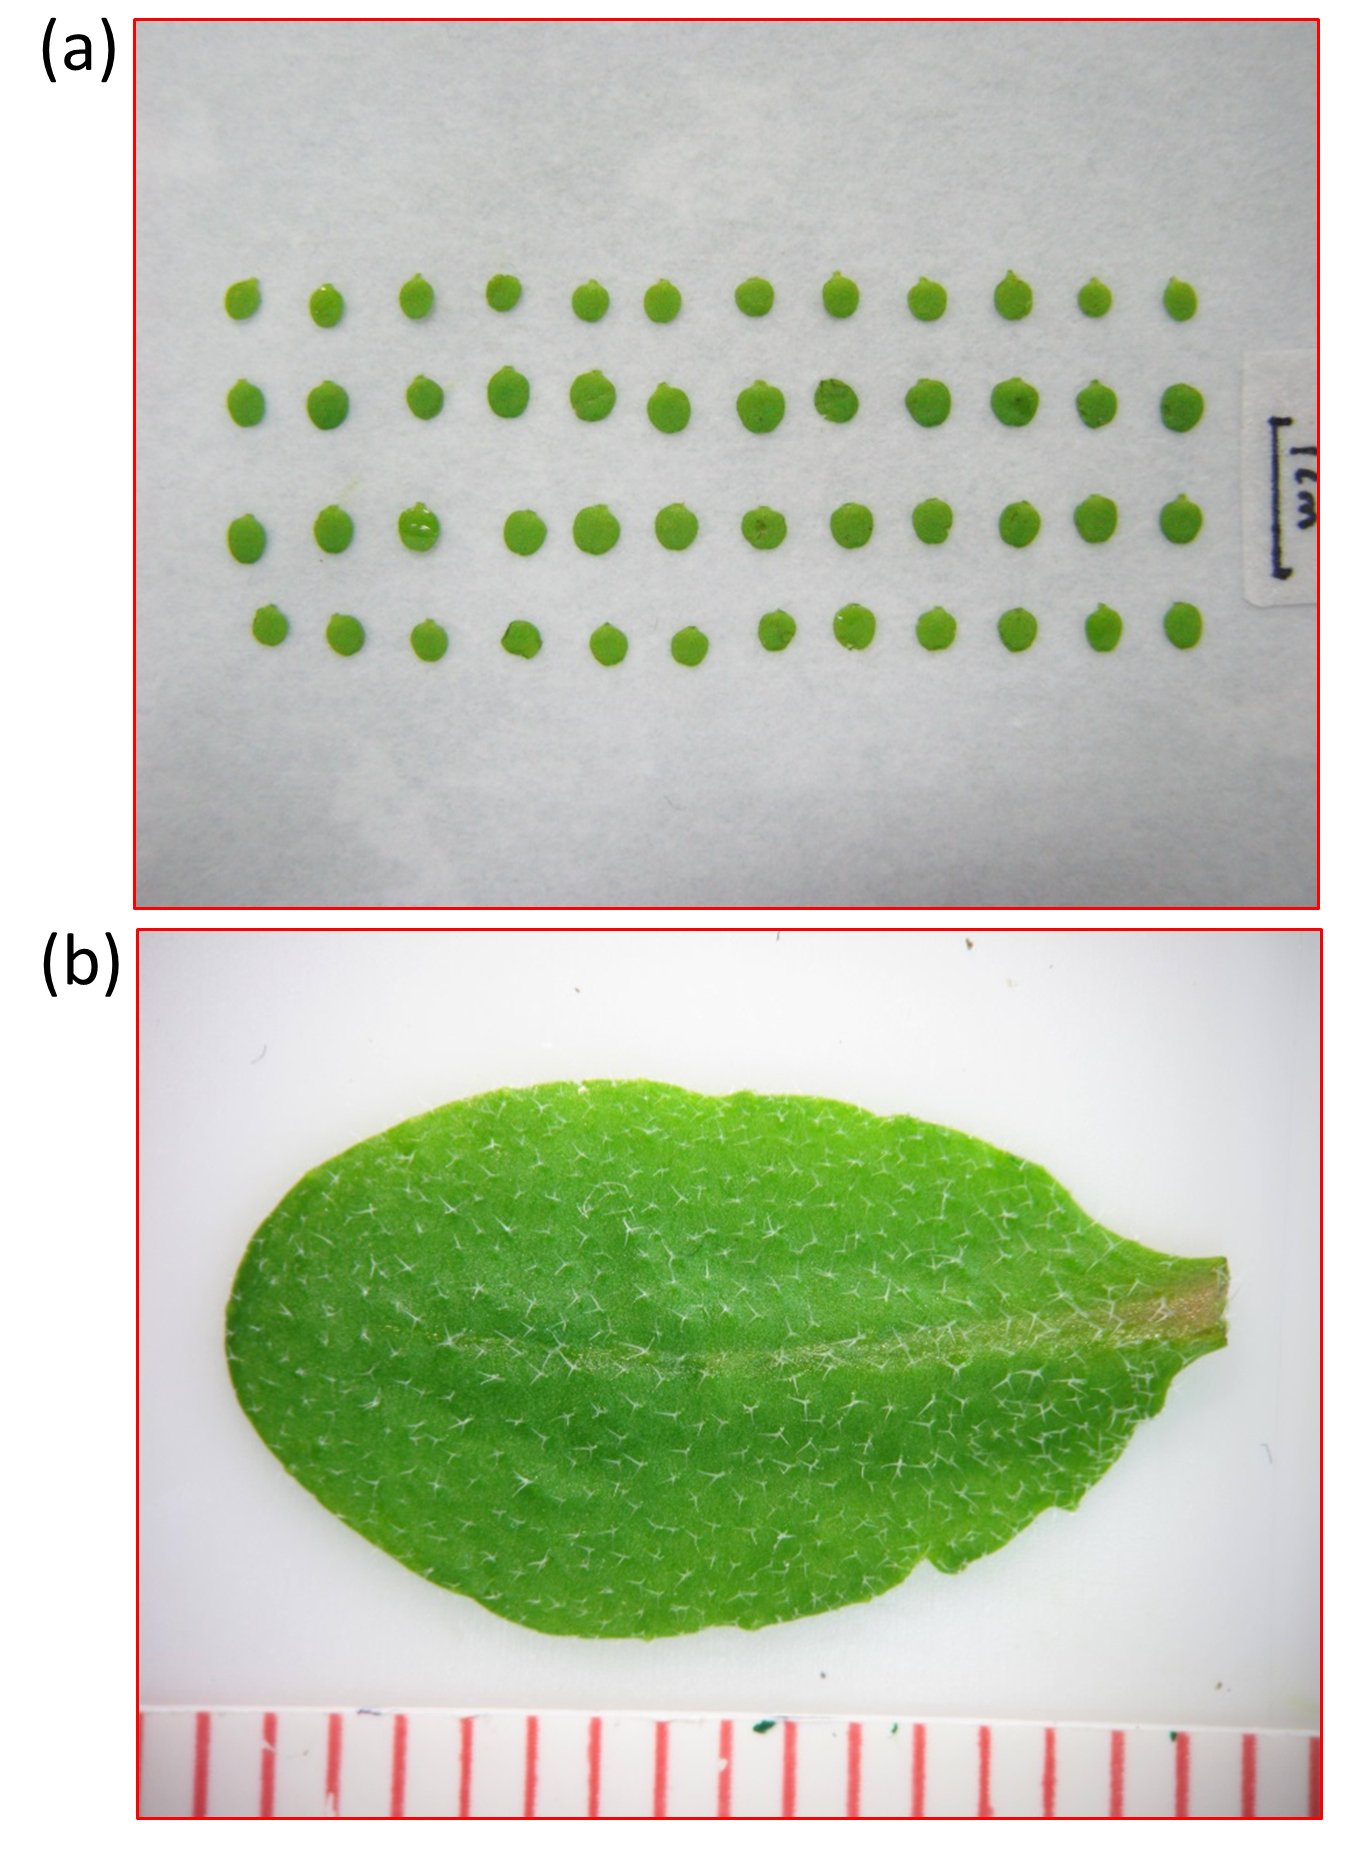 Analyses of Plant Leaf Cell Size, Density and Number, as Well ...